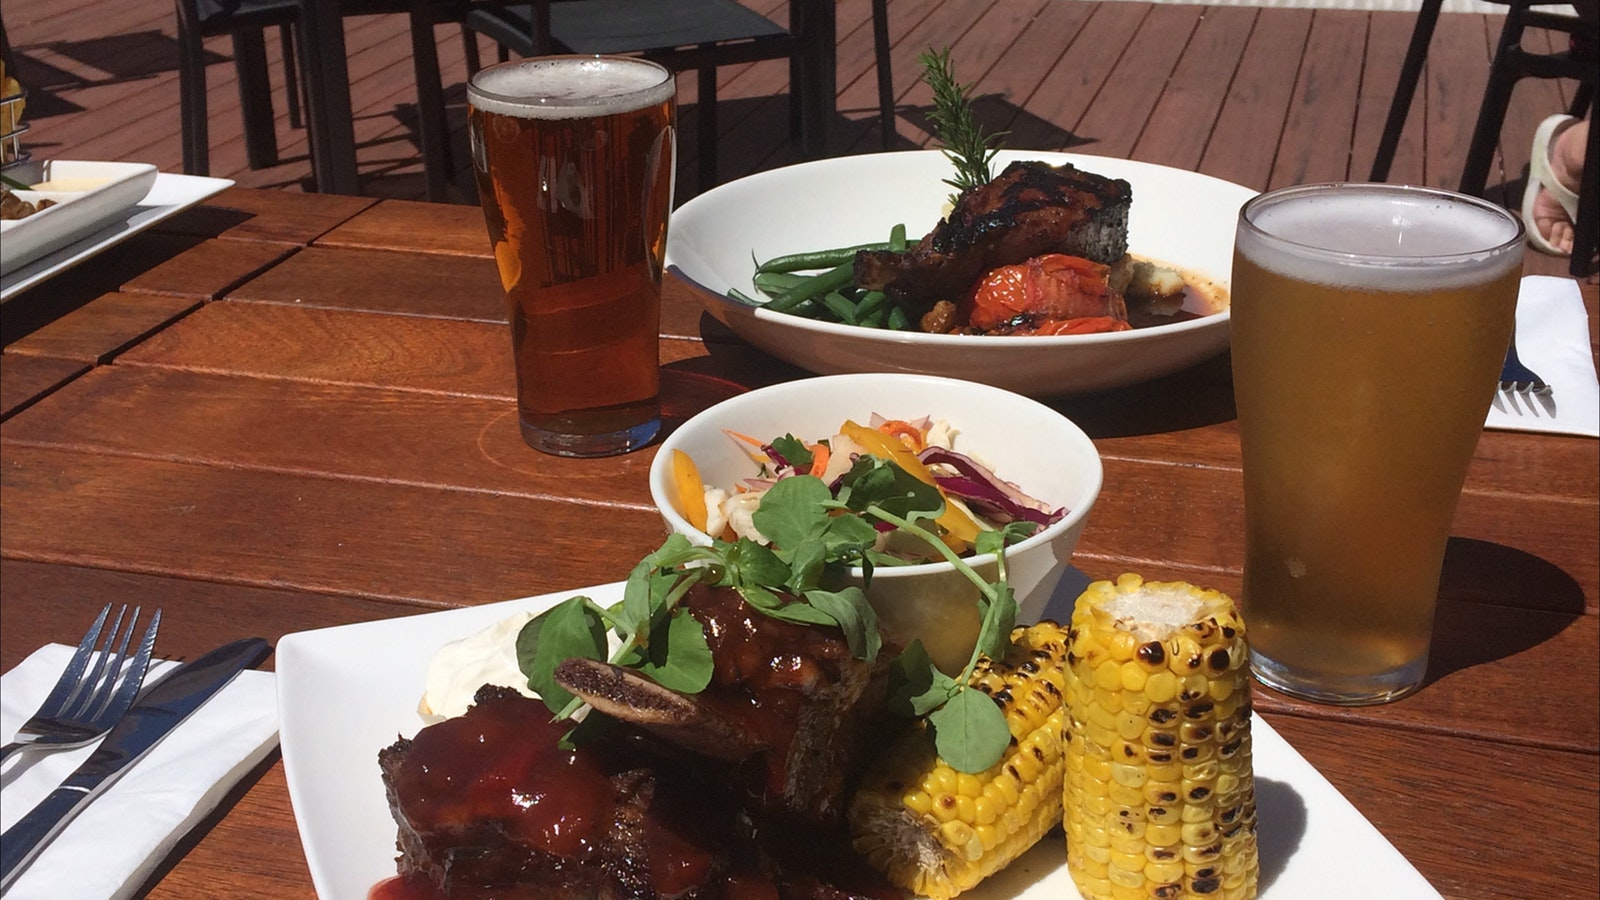 Steak, ribs and craft beer